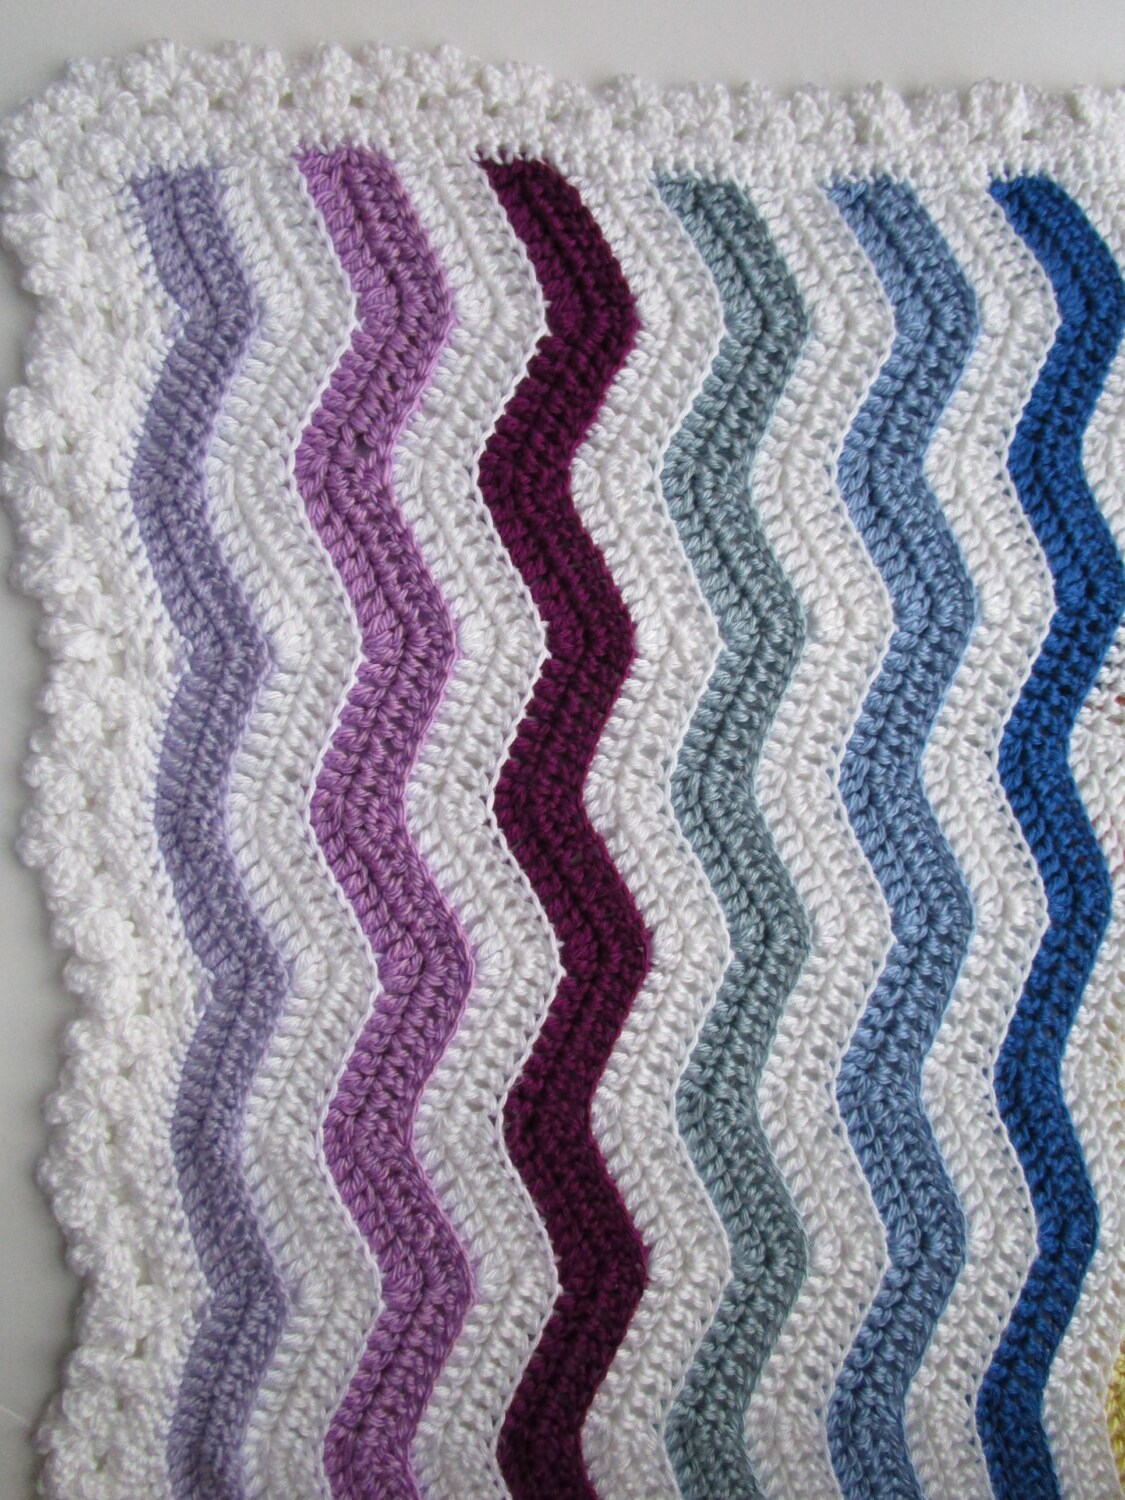 Crochet Patterns Wave Afghan : Easy Crochet Afghan Pattern Rainbow Ripple by KathieSewHappy